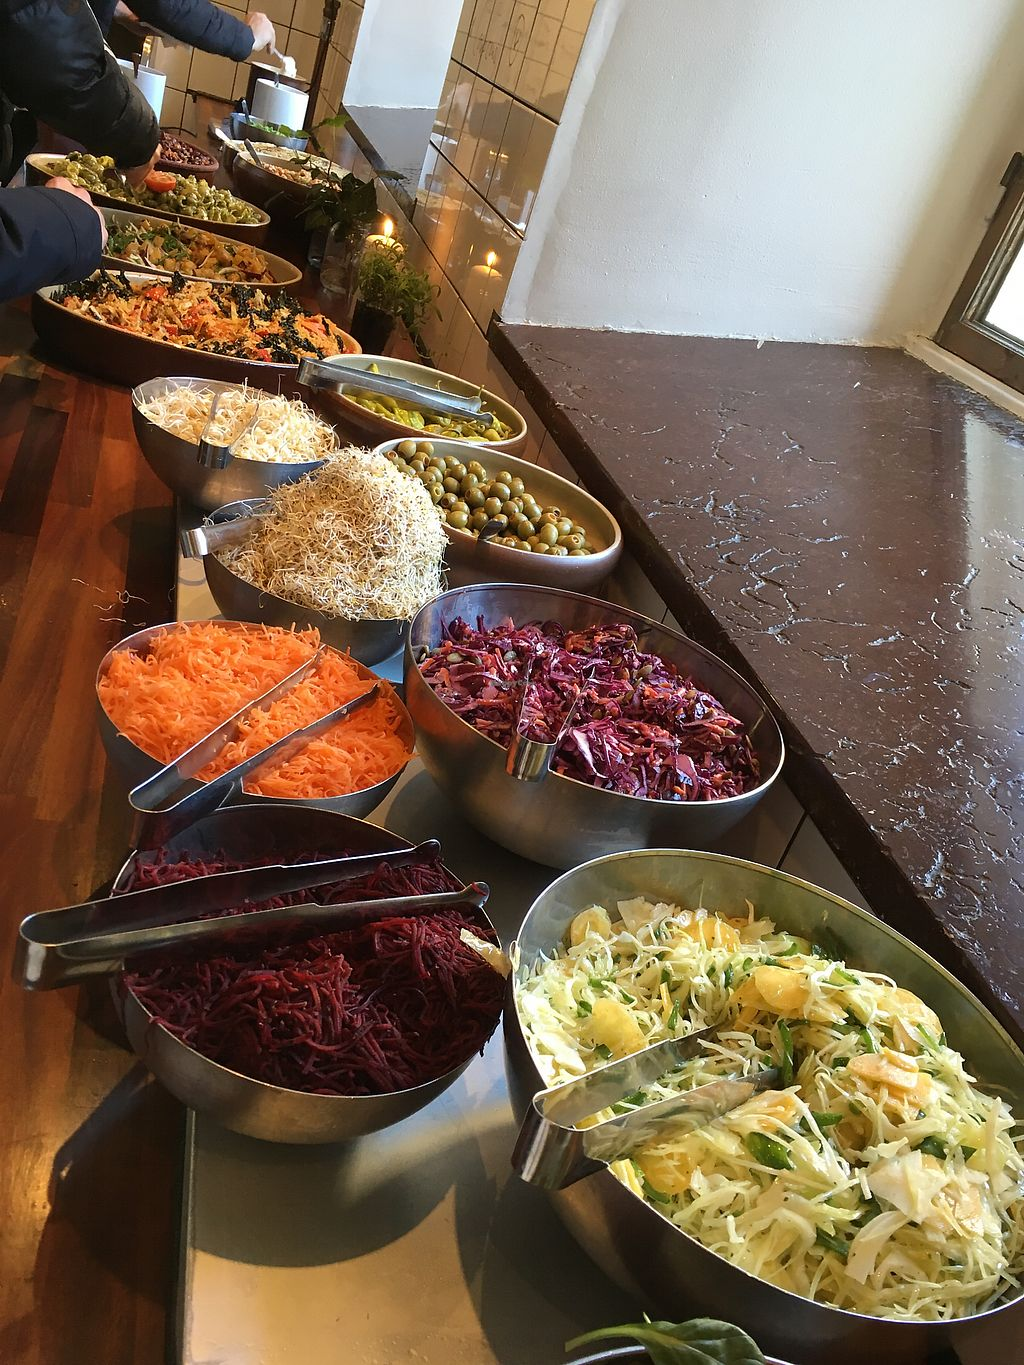 """Photo of Cafe Hangmattan  by <a href=""""/members/profile/SuzyJones"""">SuzyJones</a> <br/>Lunch buffet  <br/> April 6, 2018  - <a href='/contact/abuse/image/25037/381651'>Report</a>"""